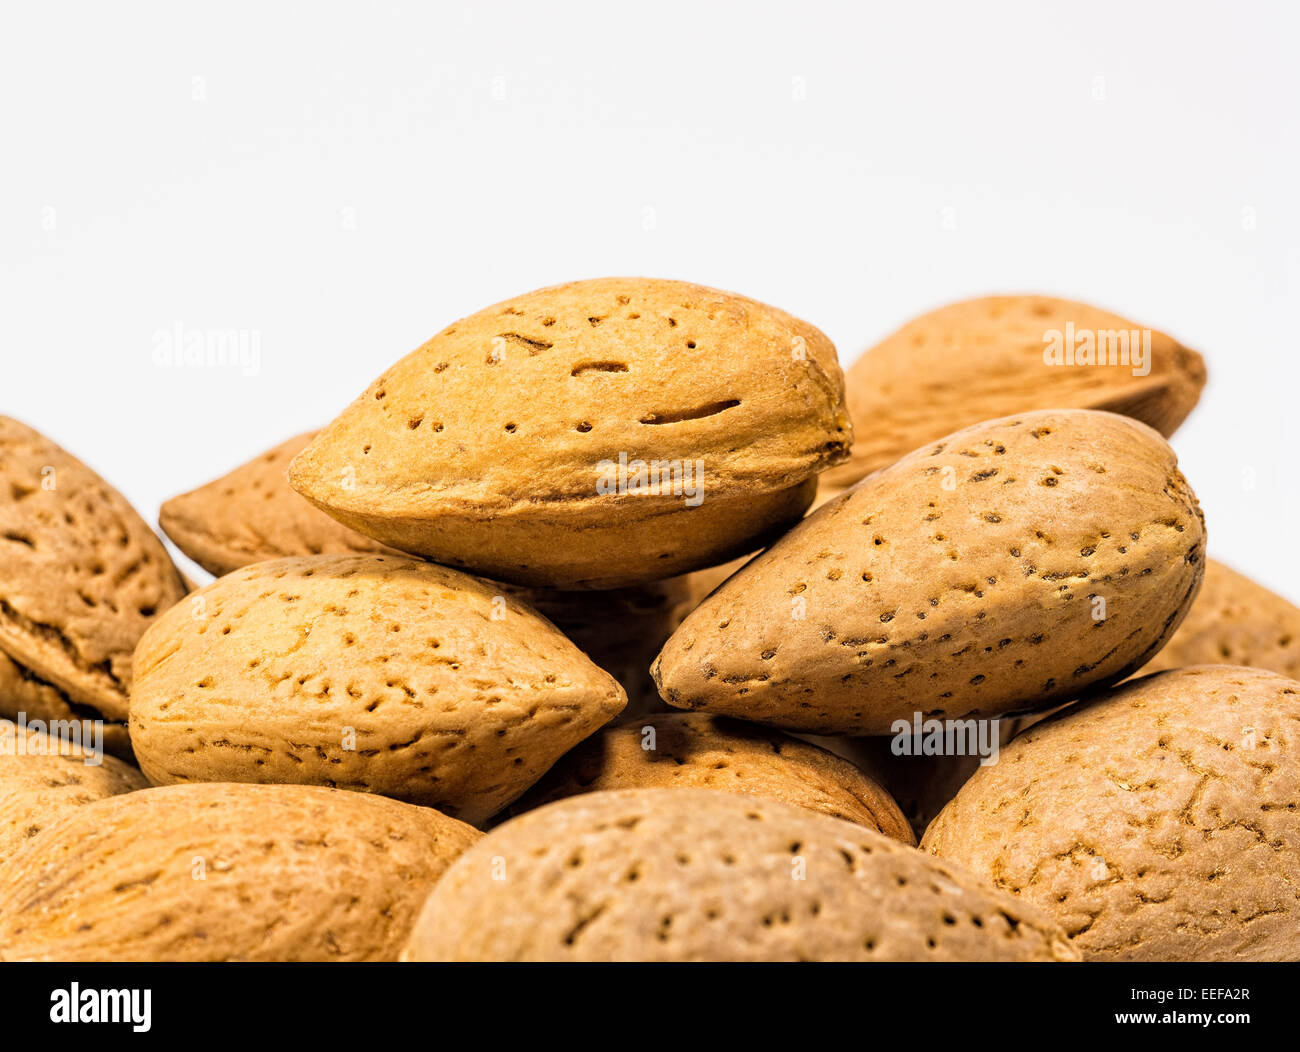 Almonds with white background - Stock Image